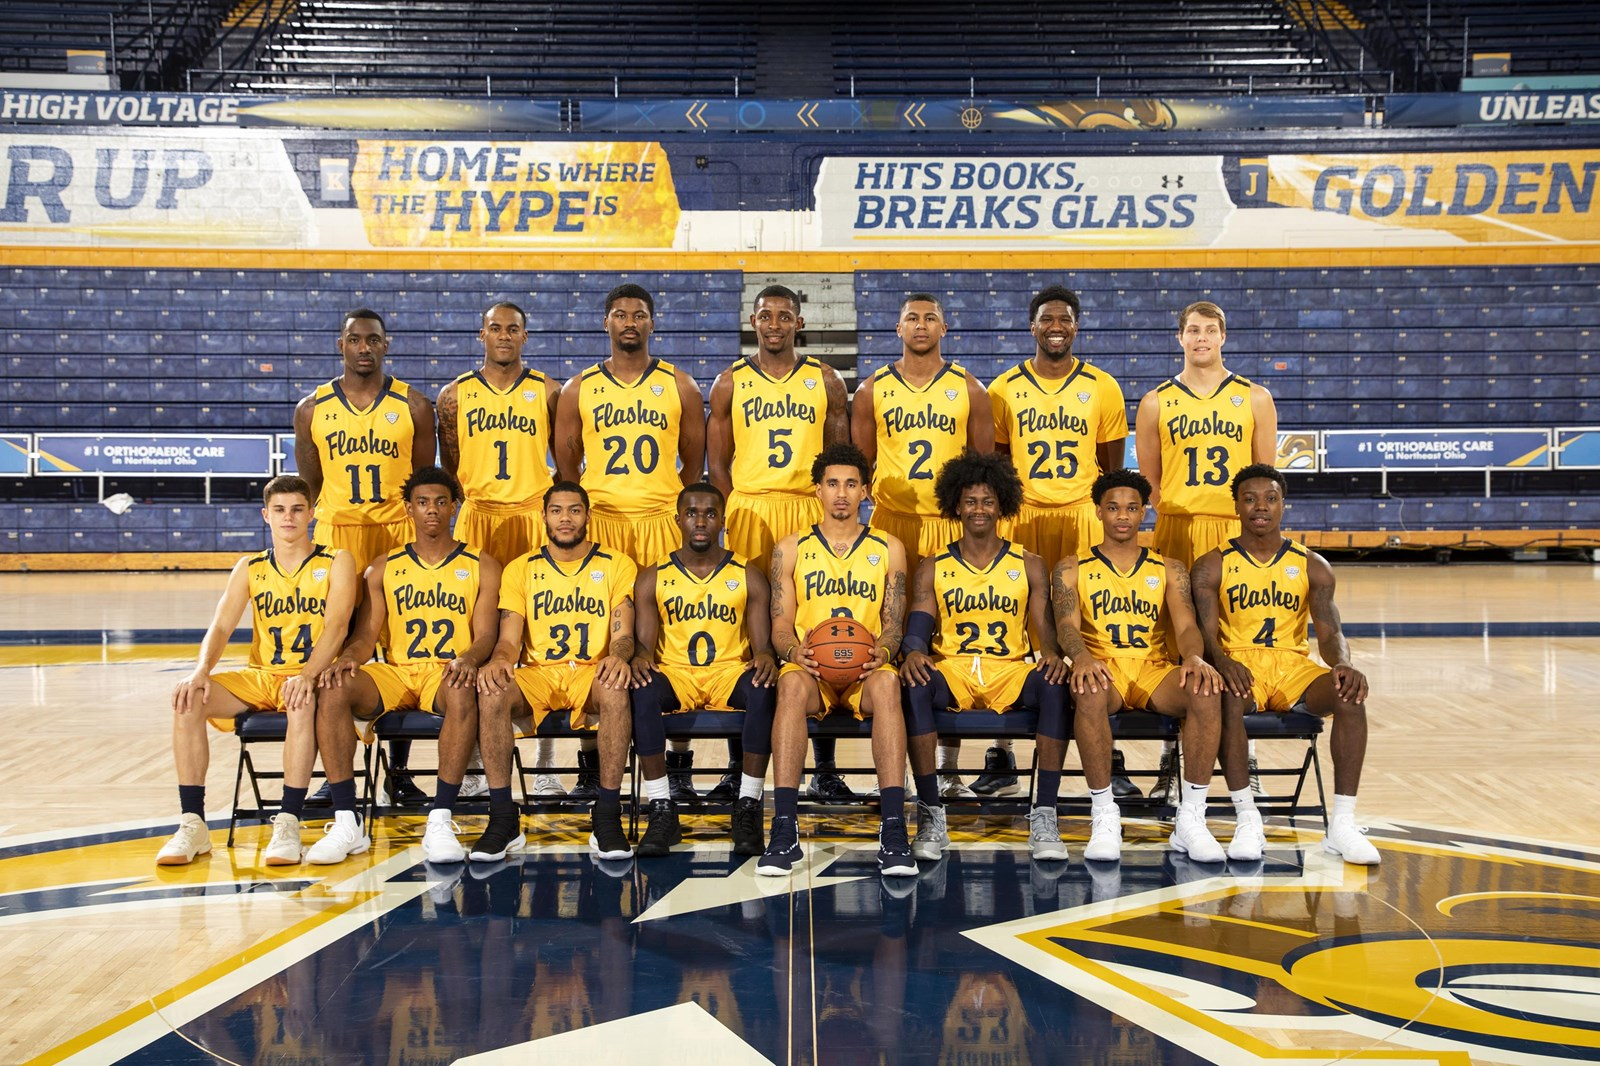 2018-19 men's basketball roster - kent state university athletics